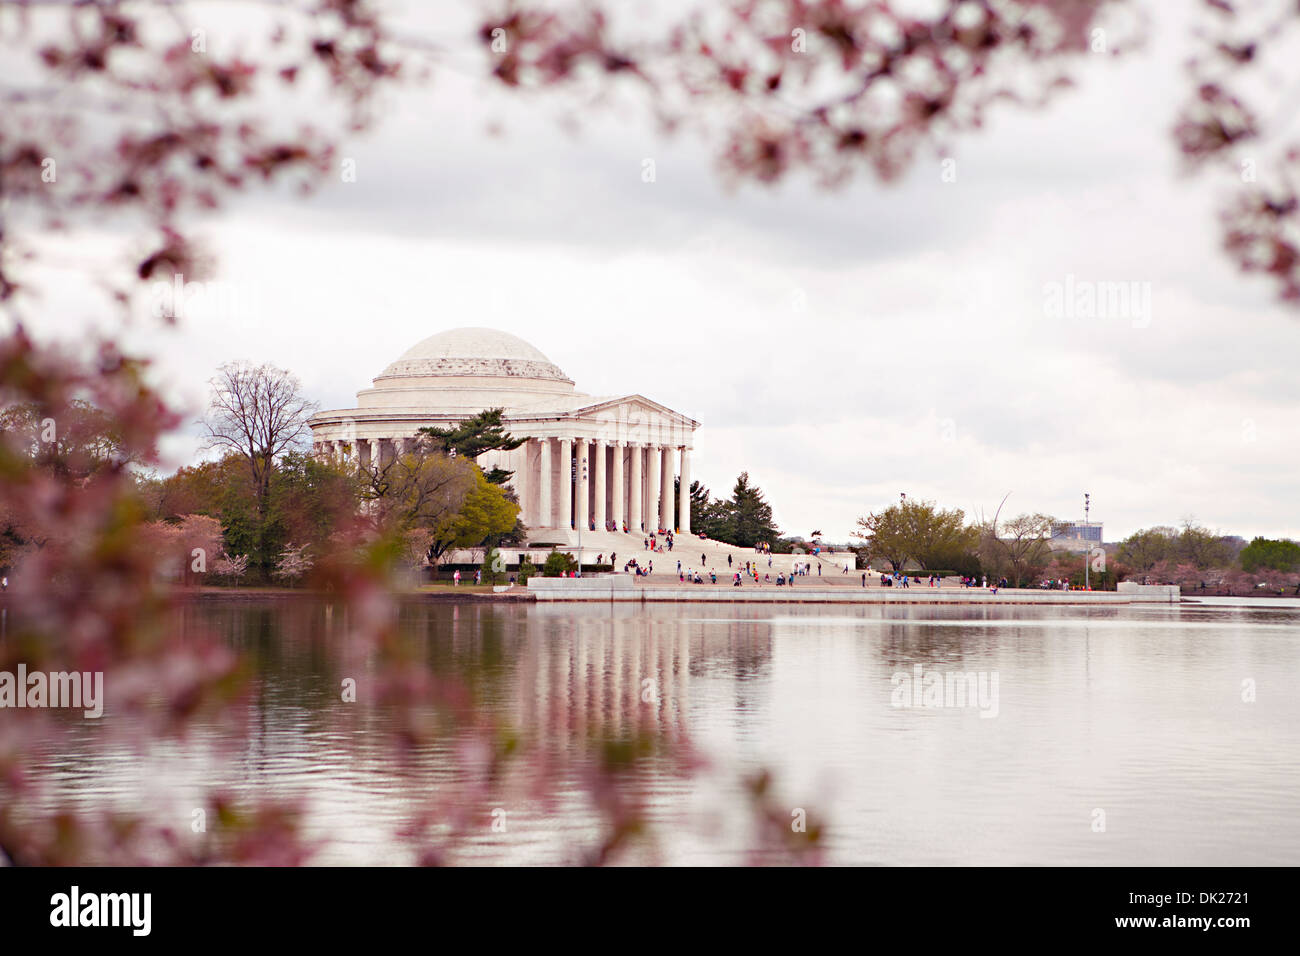 Pink cherry blossoms framing view of \